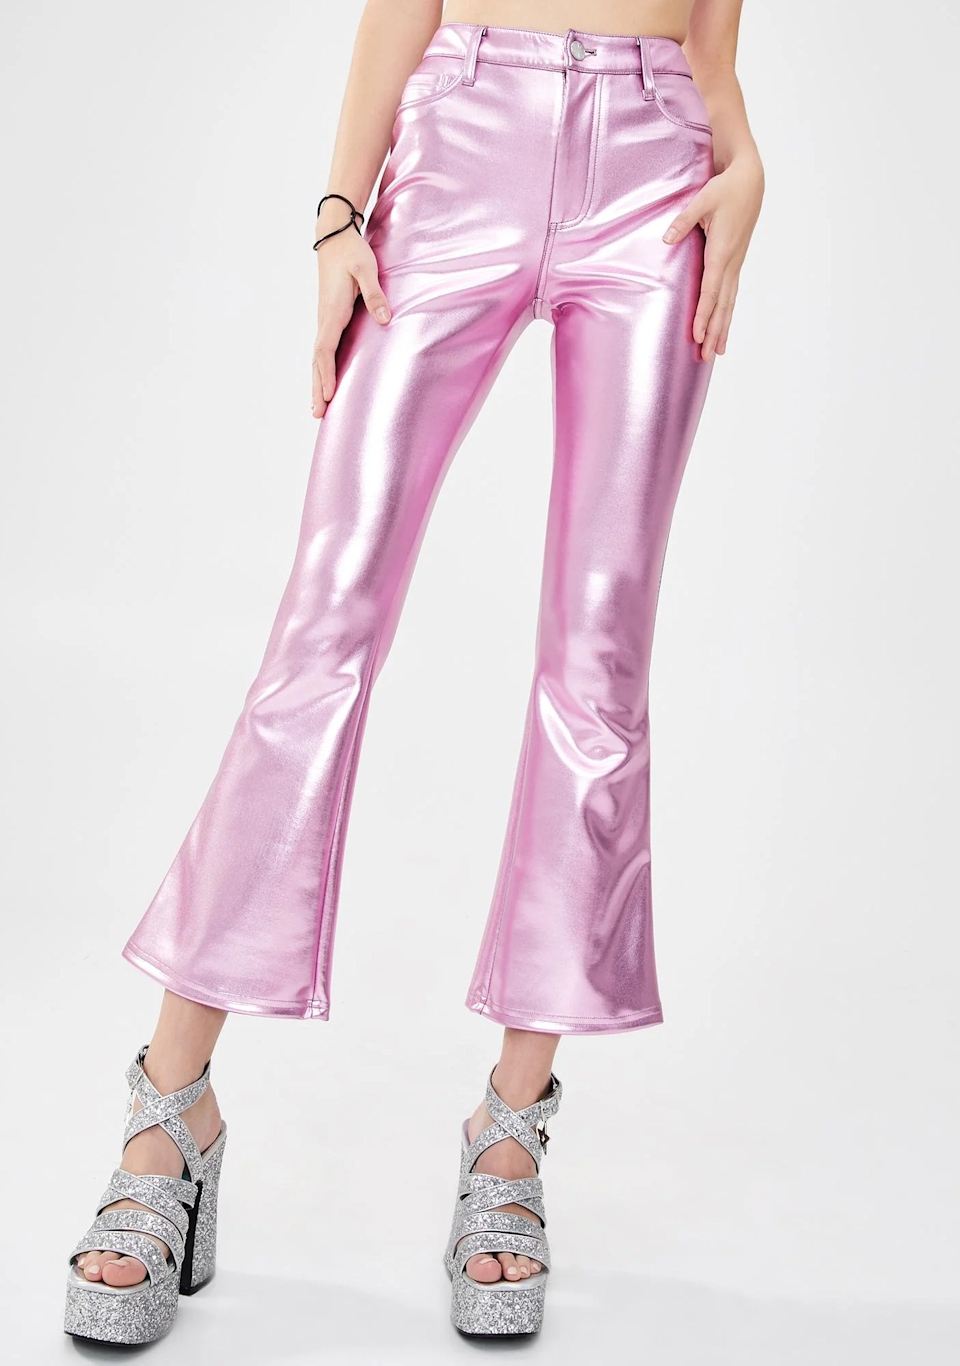 "<br><br><strong>dELiA*s by Dolls Kill</strong> Metallic Flare Pants, $, available at <a href=""https://go.skimresources.com/?id=30283X879131&url=https%3A%2F%2Fwww.dollskill.com%2Fdelias-metallic-flare-pants-pink.html"" rel=""nofollow noopener"" target=""_blank"" data-ylk=""slk:Delia's"" class=""link rapid-noclick-resp"">Delia's</a>"